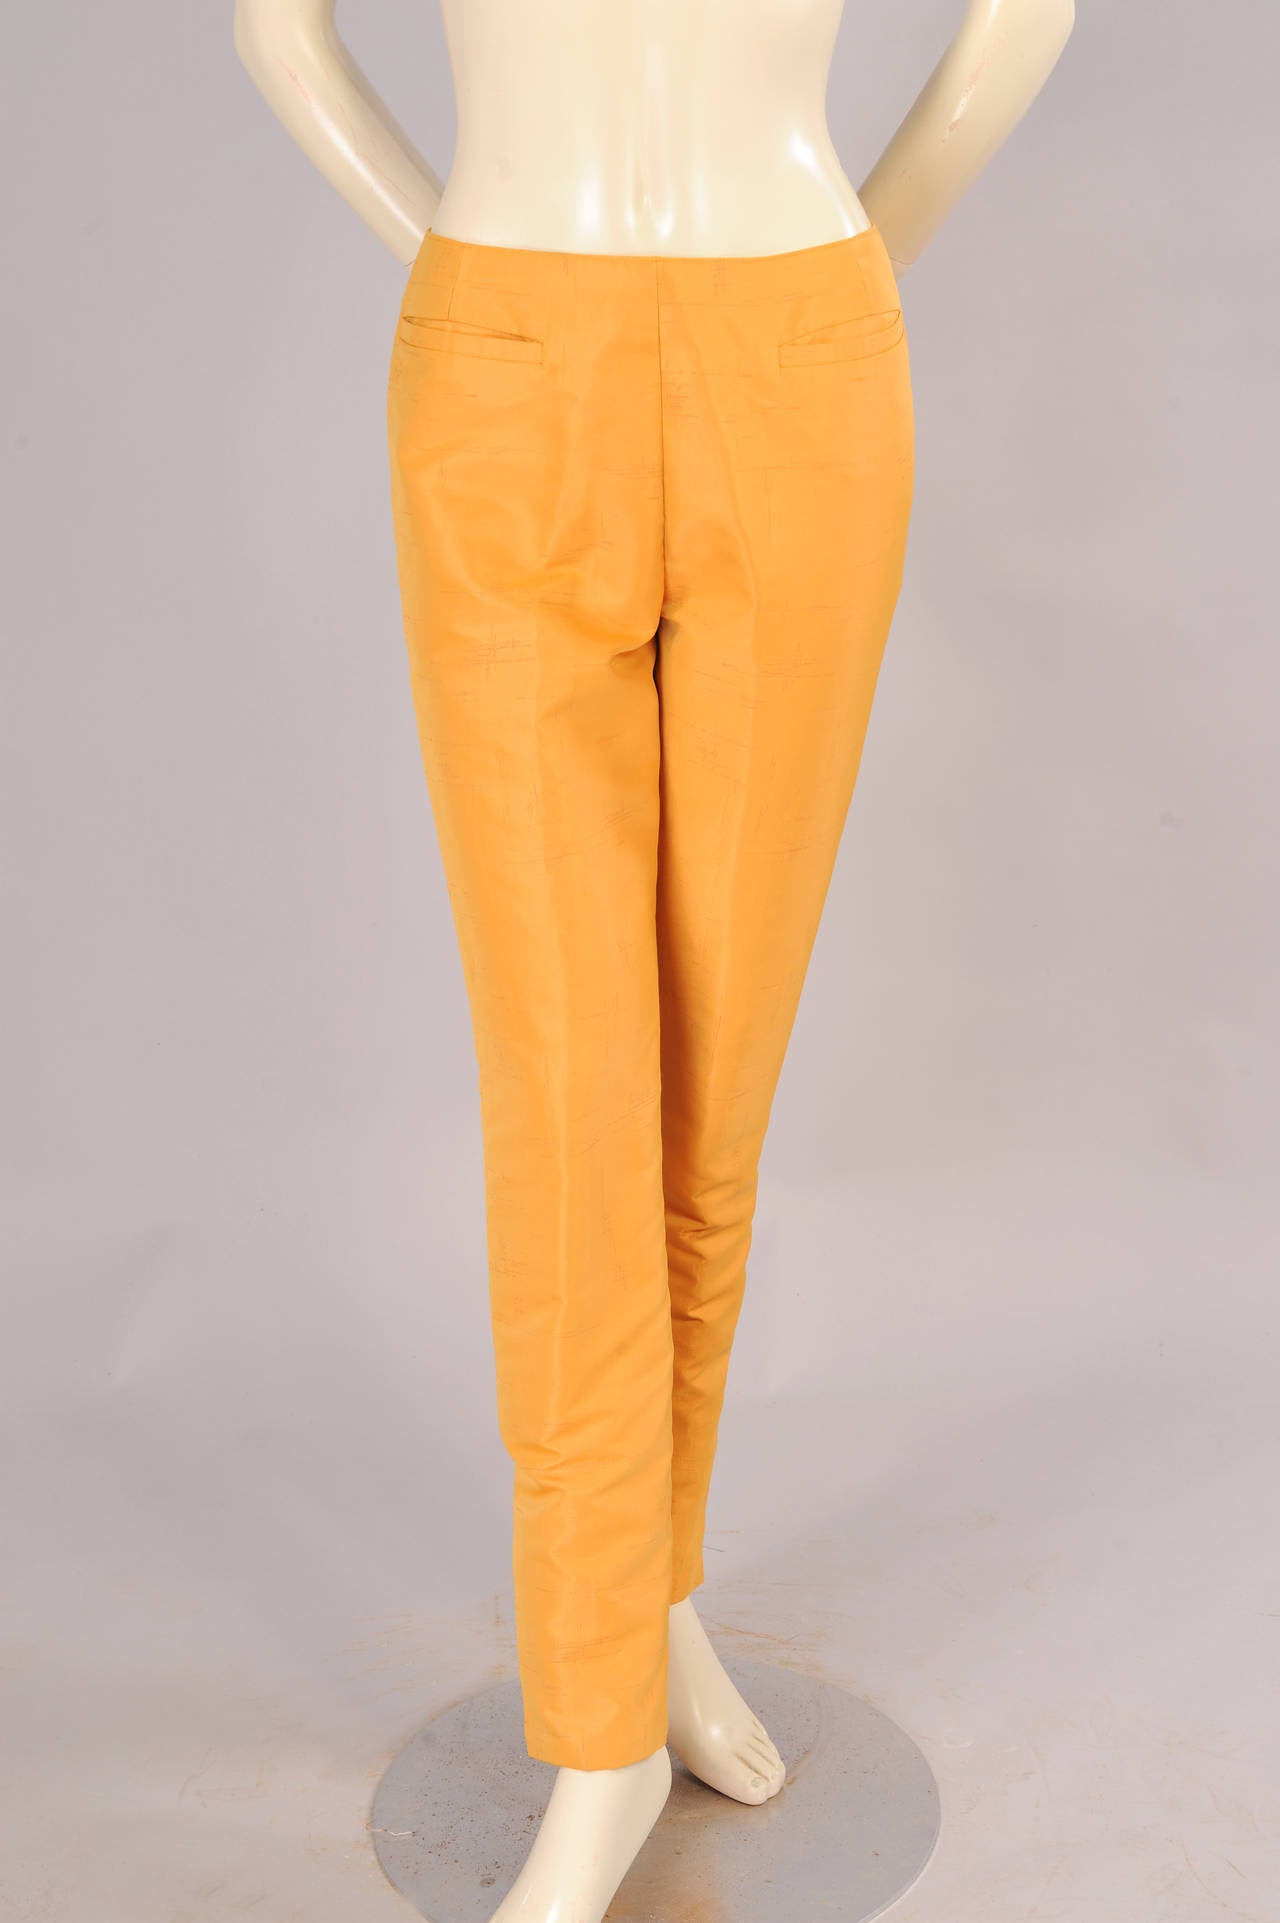 Women's Oscar de la Renta Slim Coat & Pants Ensemble in Tan and Saffron Silk For Sale